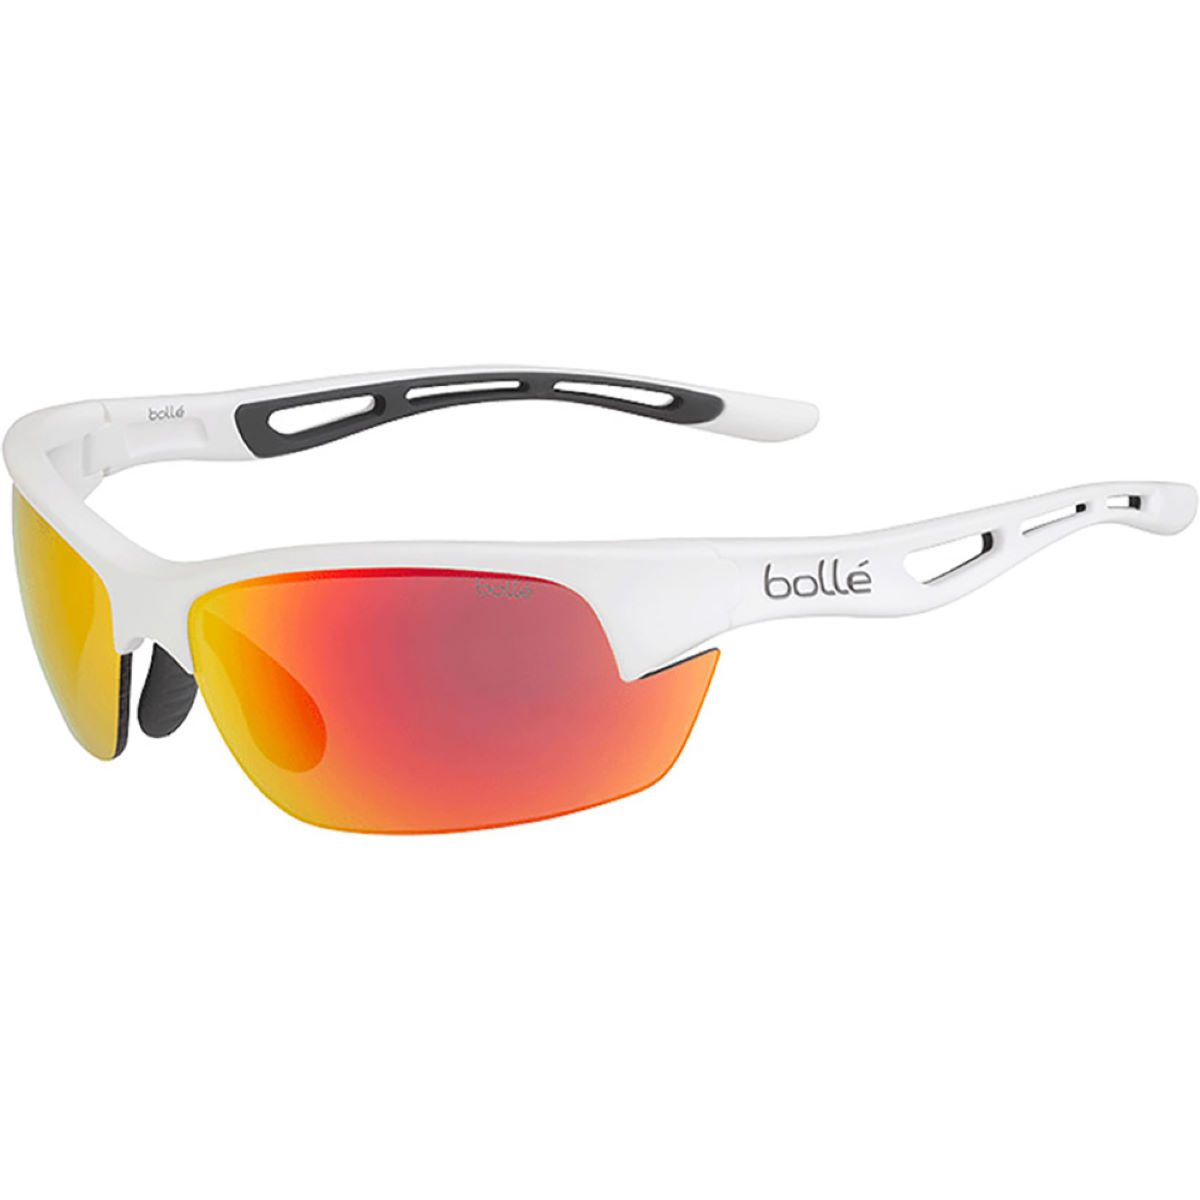 Bolle Bolt S White - Occhiali da sole